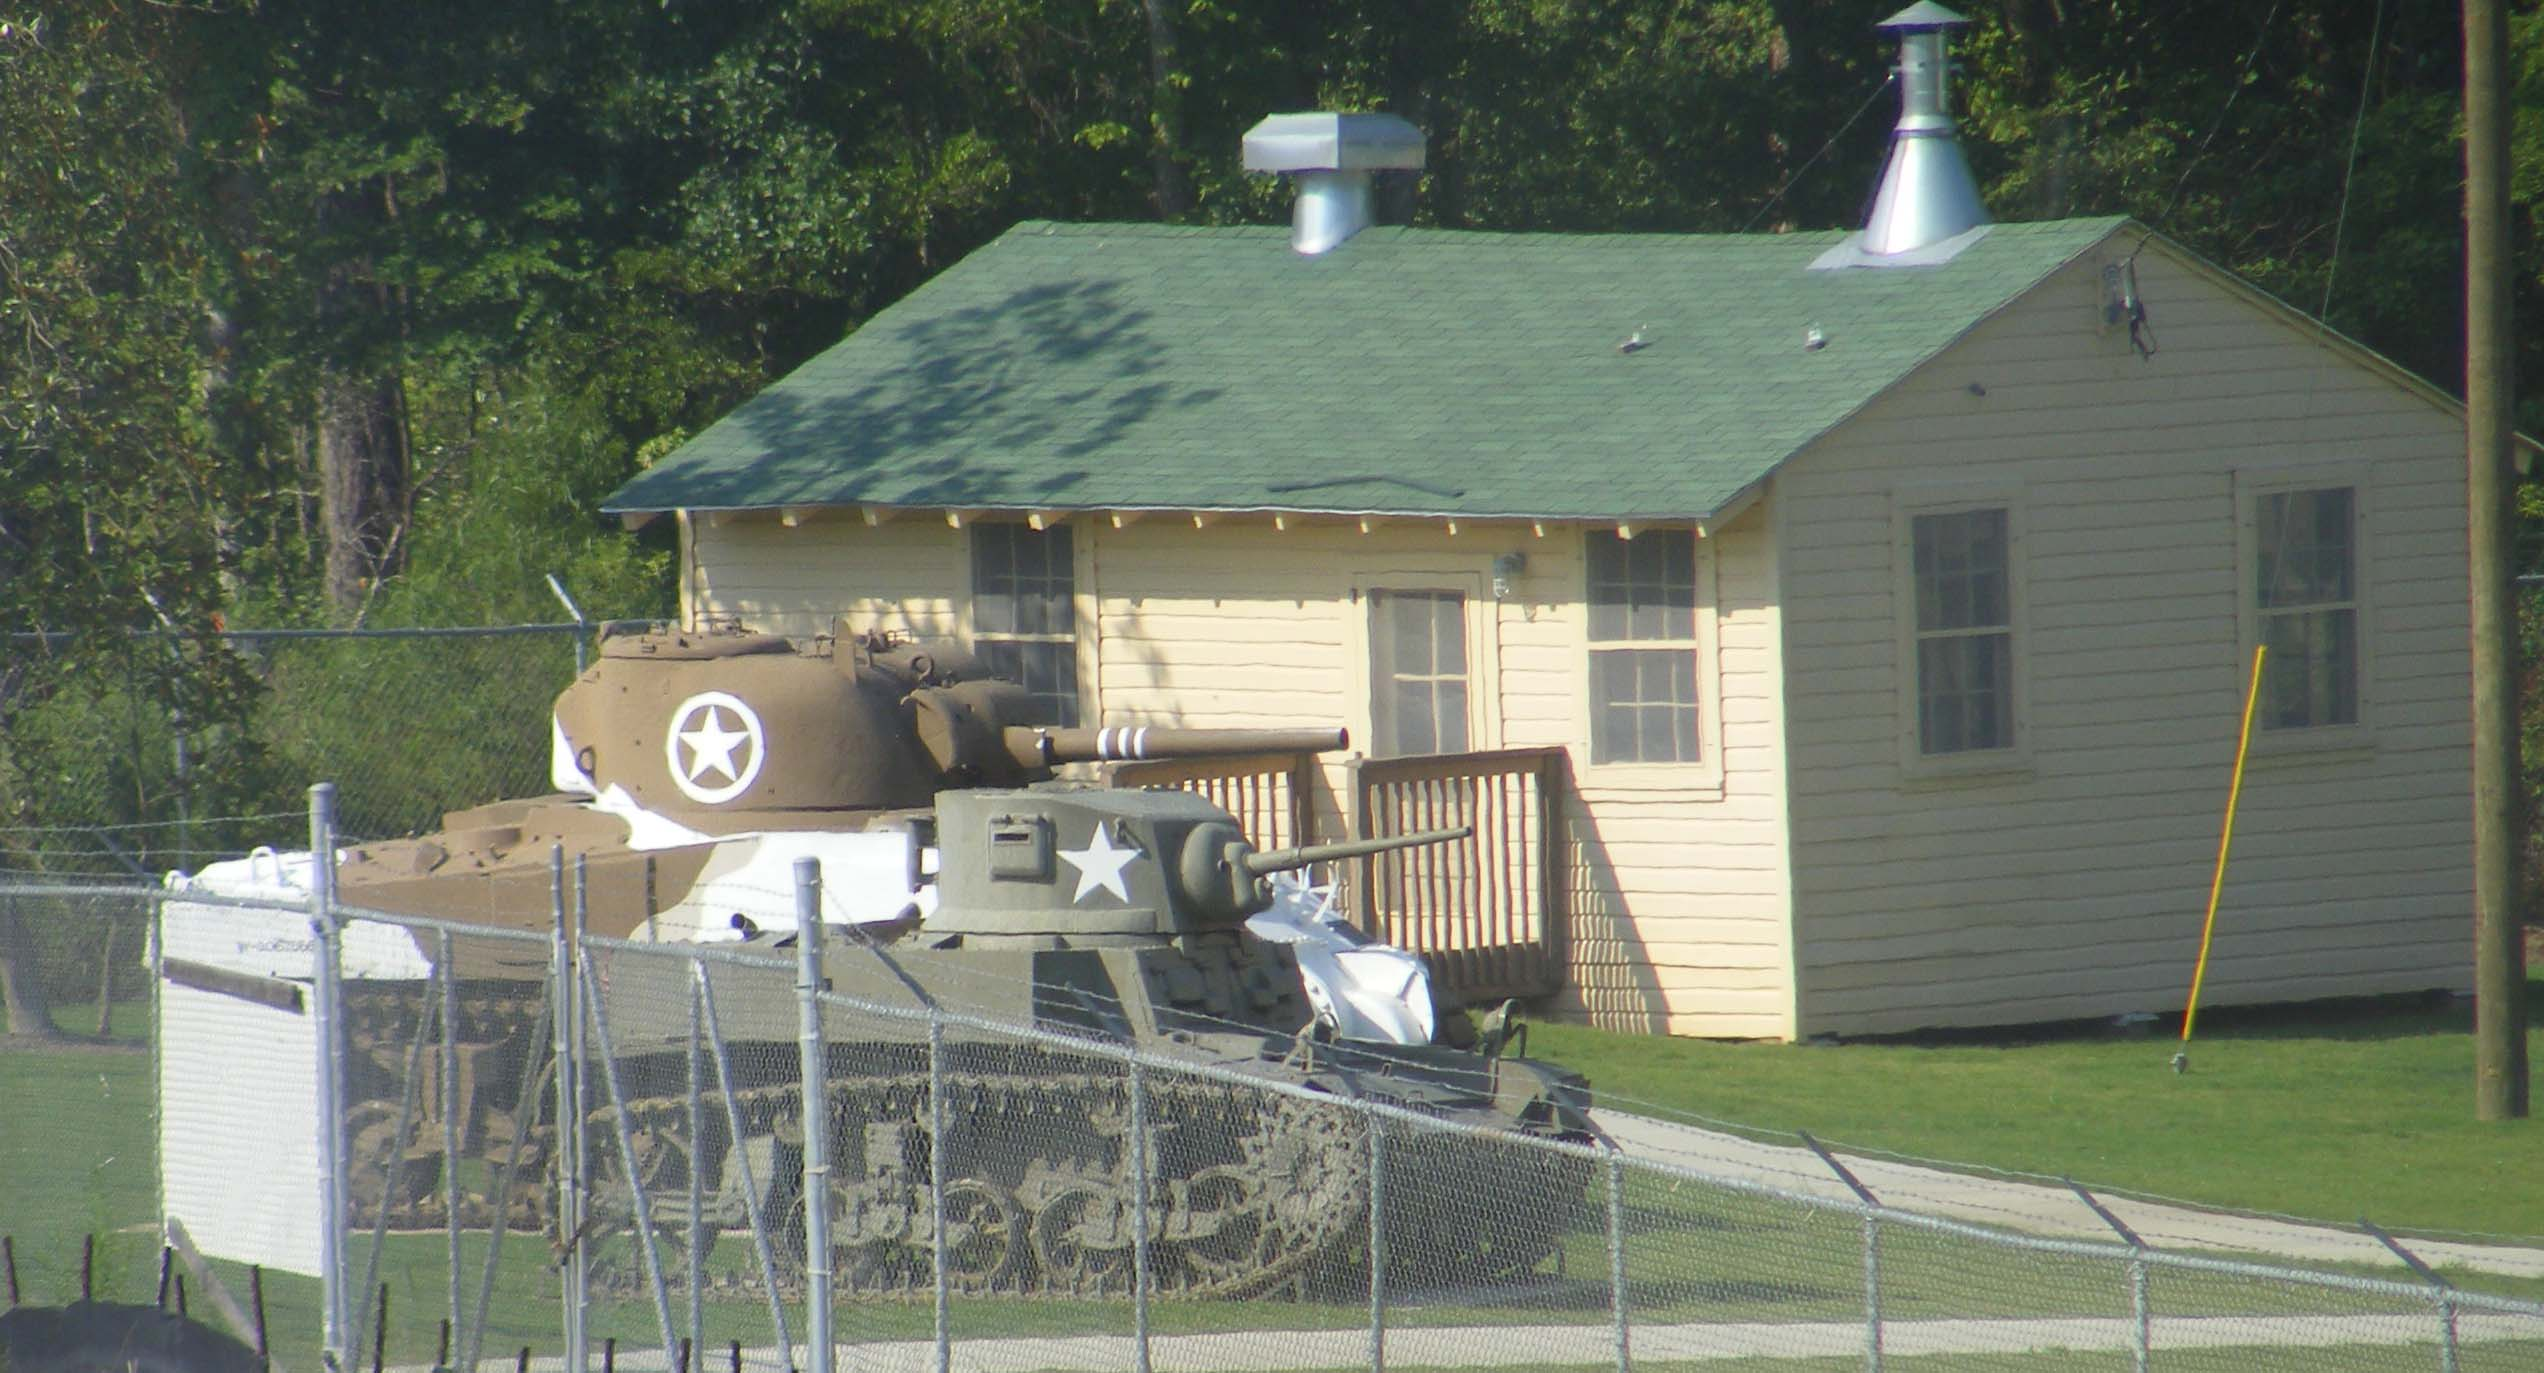 Patton Shack and Tanks